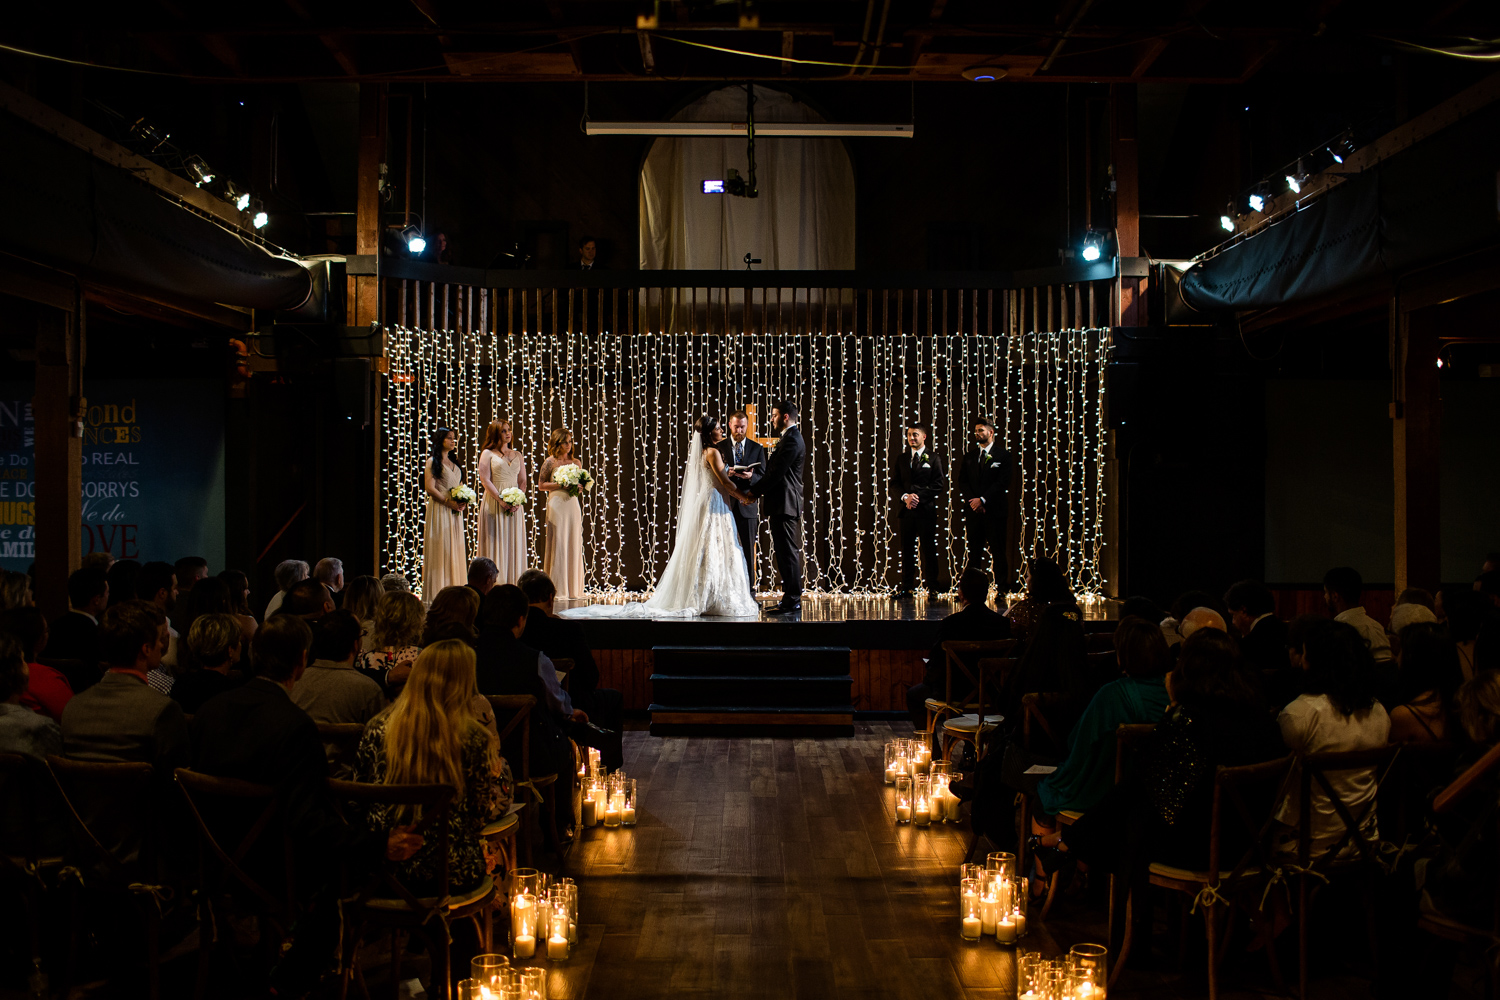 Wedding Ceremony at Second Chance Church in Peoria IL